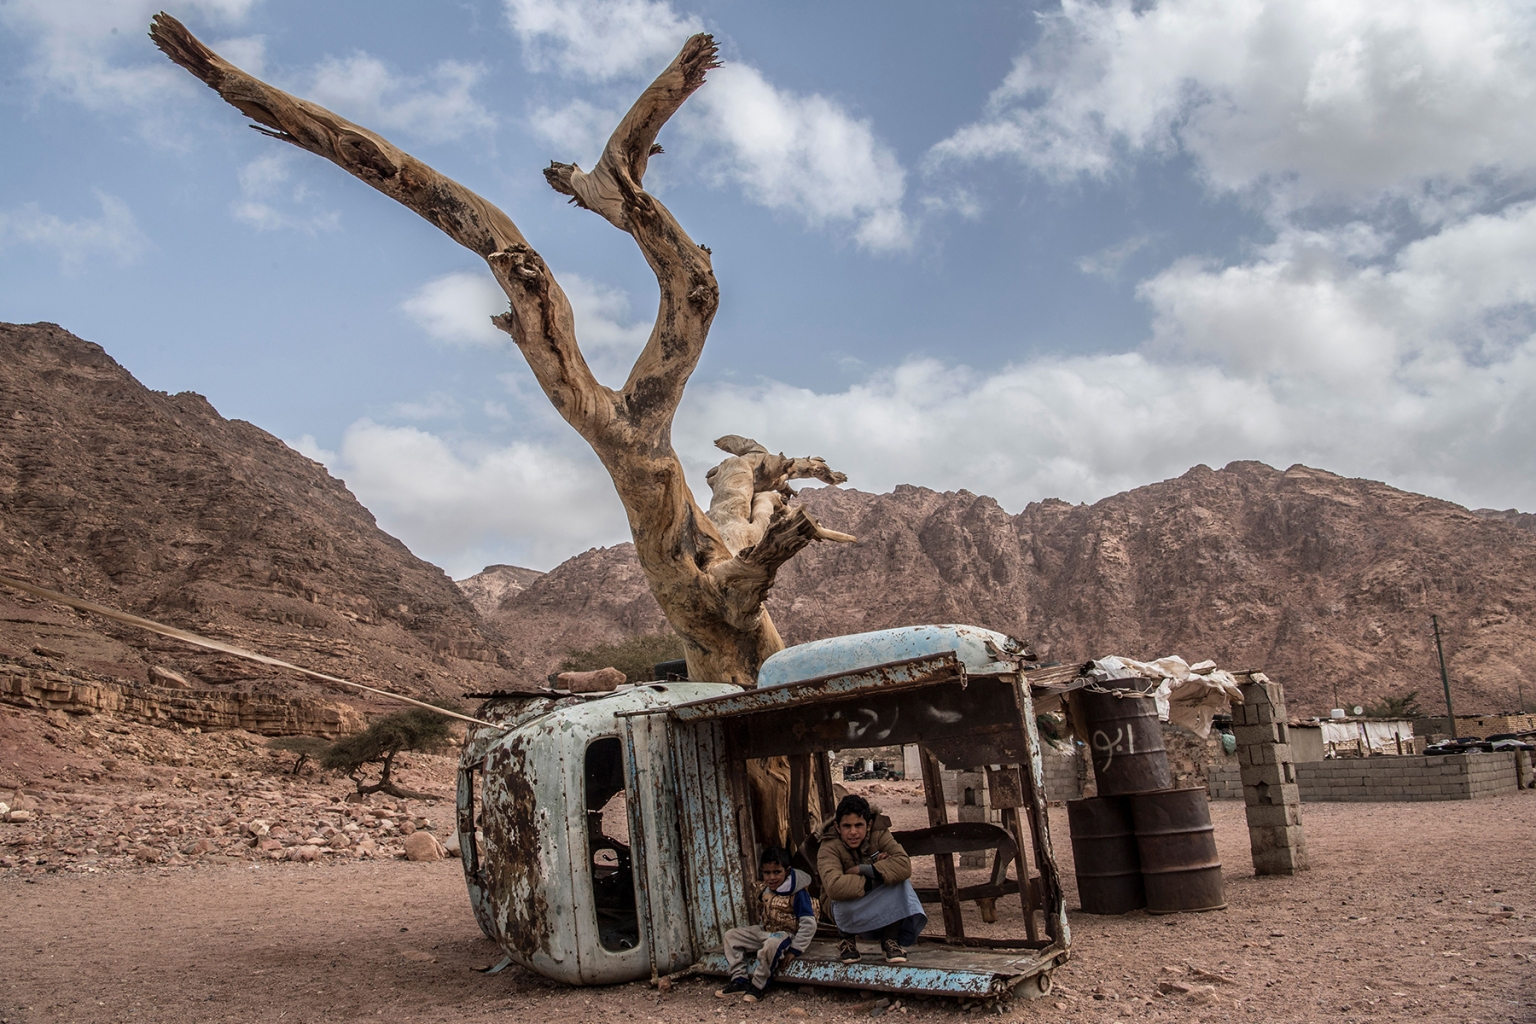 Egyptian Bedouin children sit in a rusted shell of a truck in the village of al-Hamada in Wadi el-Sahu, a village in the southern part of Egypt's eastern Sinai peninsula, on March 30. KHALED DESOUKI/AFP/Getty Images